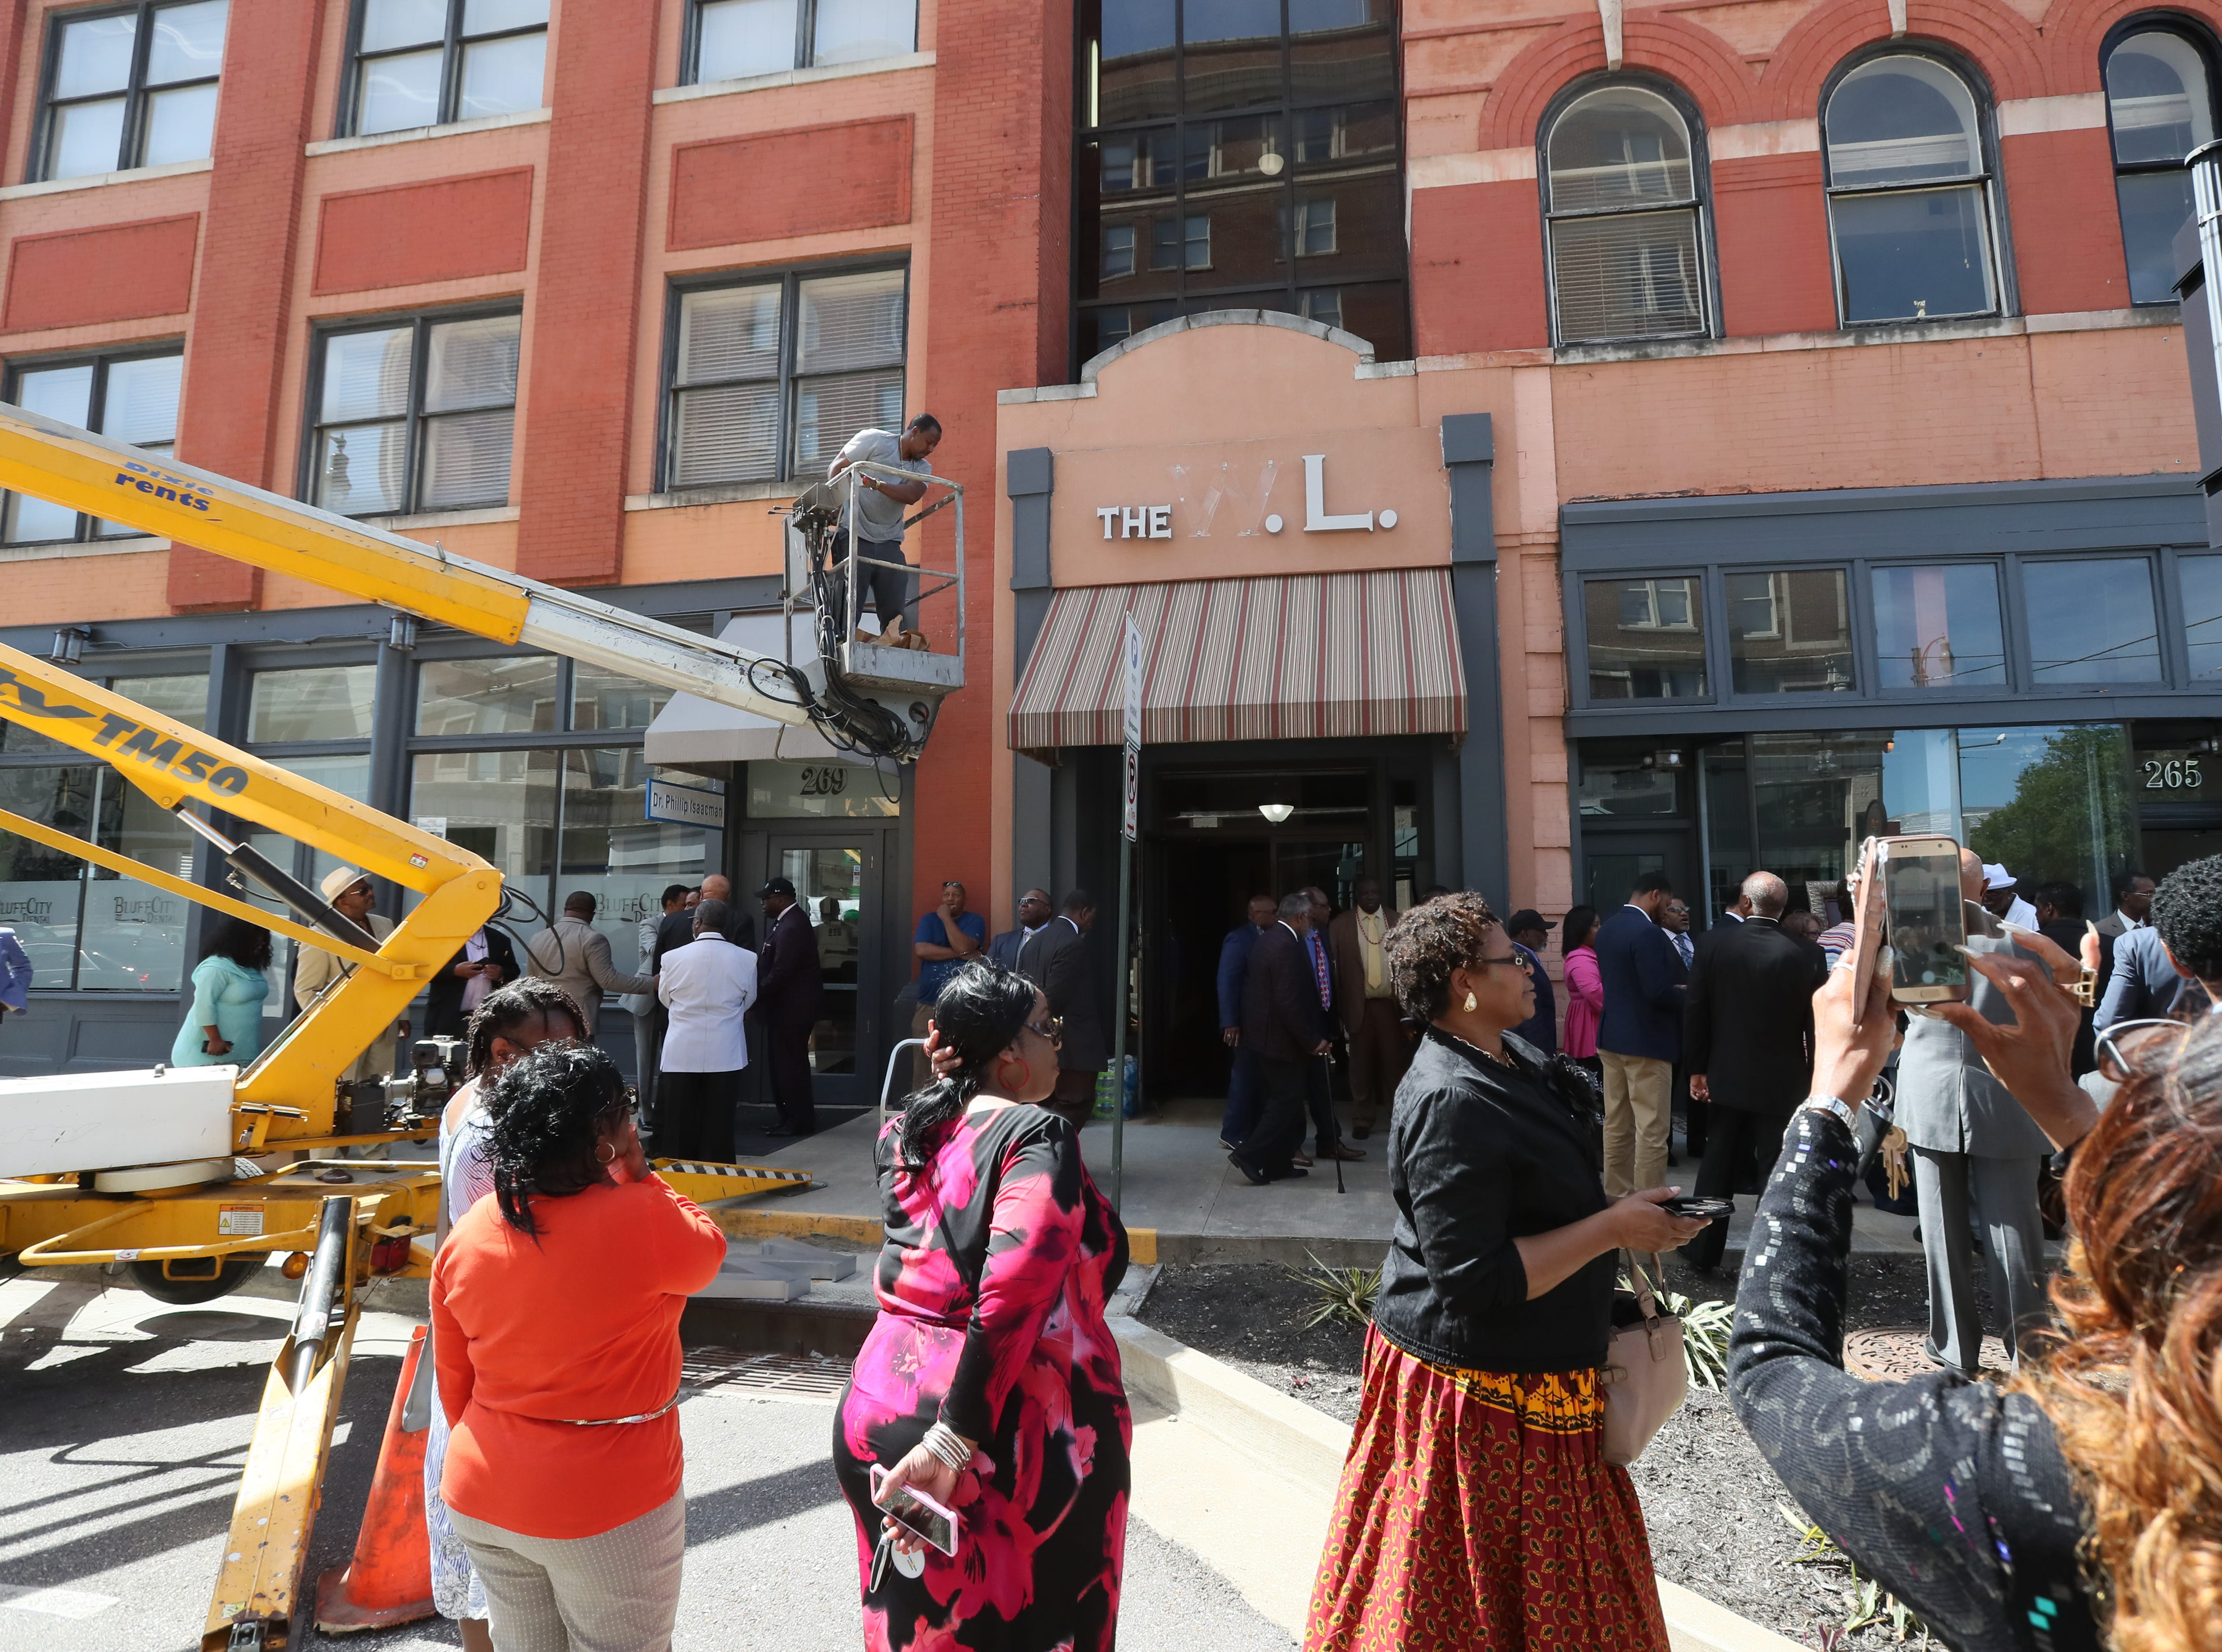 People gather on South Main Street downtown as the the Adler Building is renamed 'The W.L.' in honor of the late Bishop W.L. Porter on Wednesday, April 10, 2019.